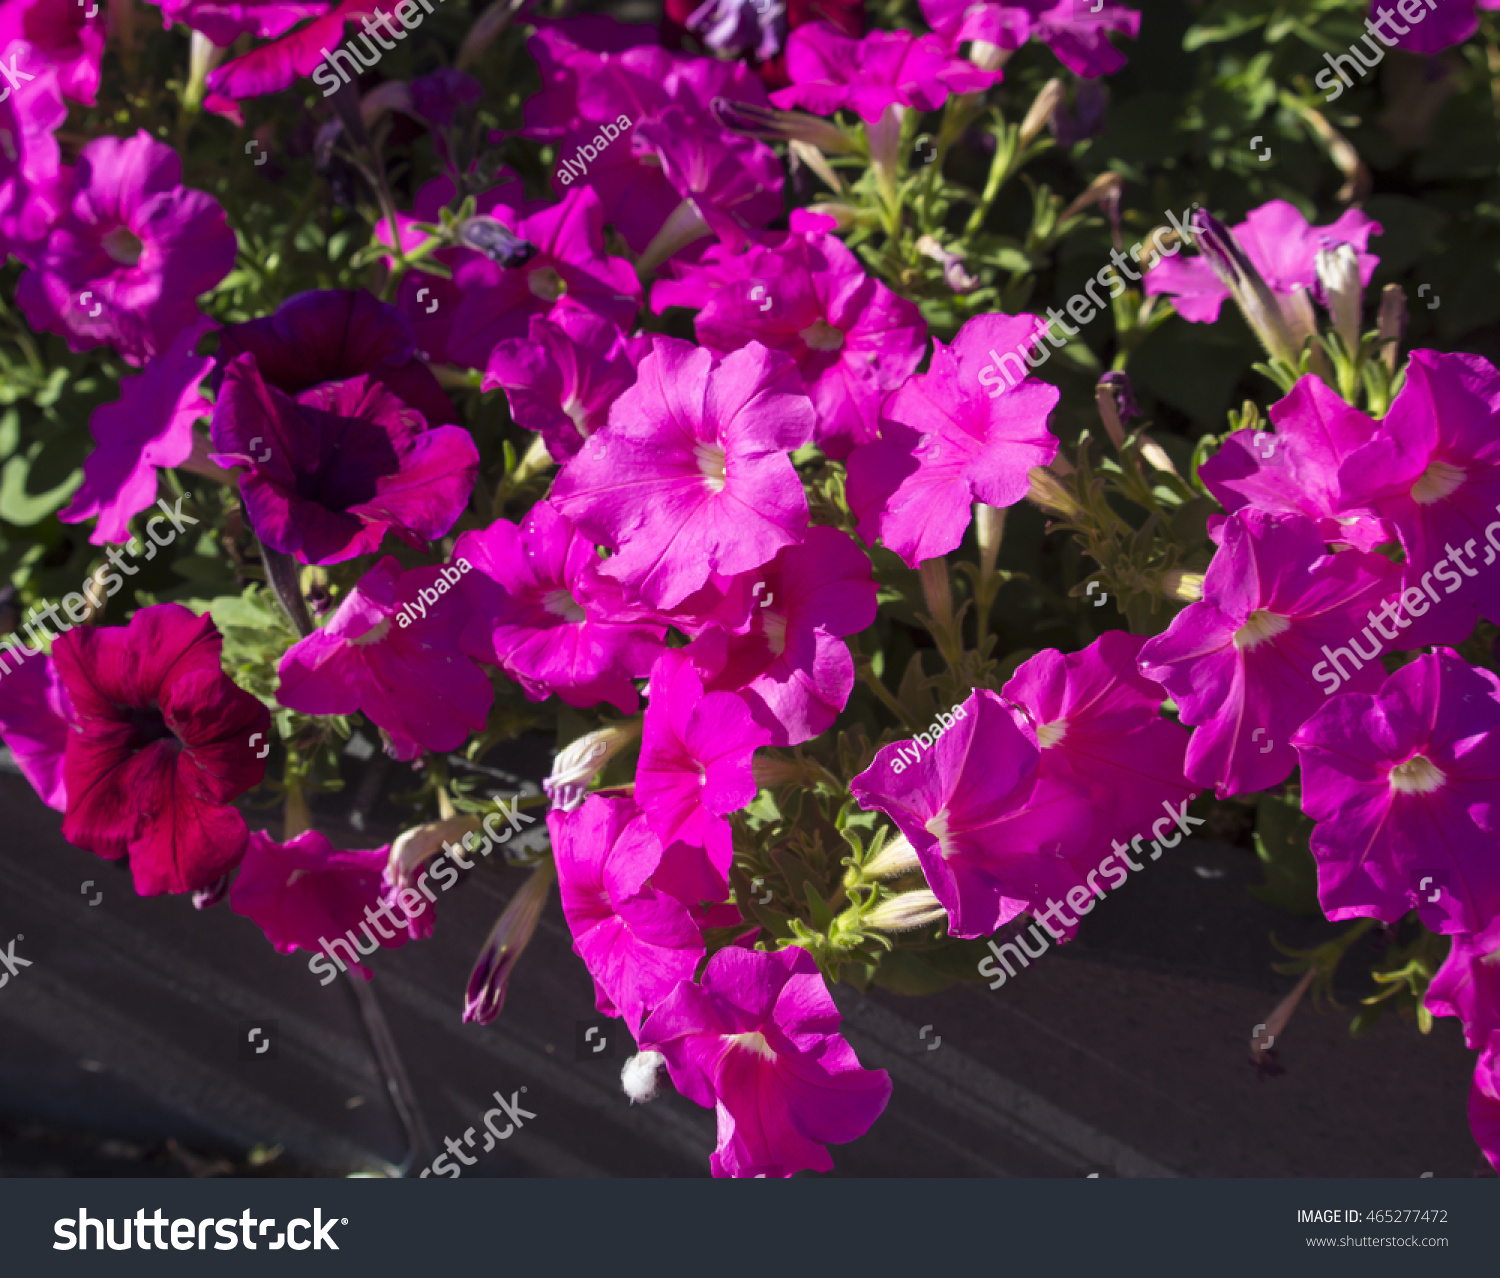 Cheerful single bright pink flowers annual stock photo royalty free cheerful single bright pink flowers of annual petunias family solanaceae blooming in a massed garden bed izmirmasajfo Choice Image